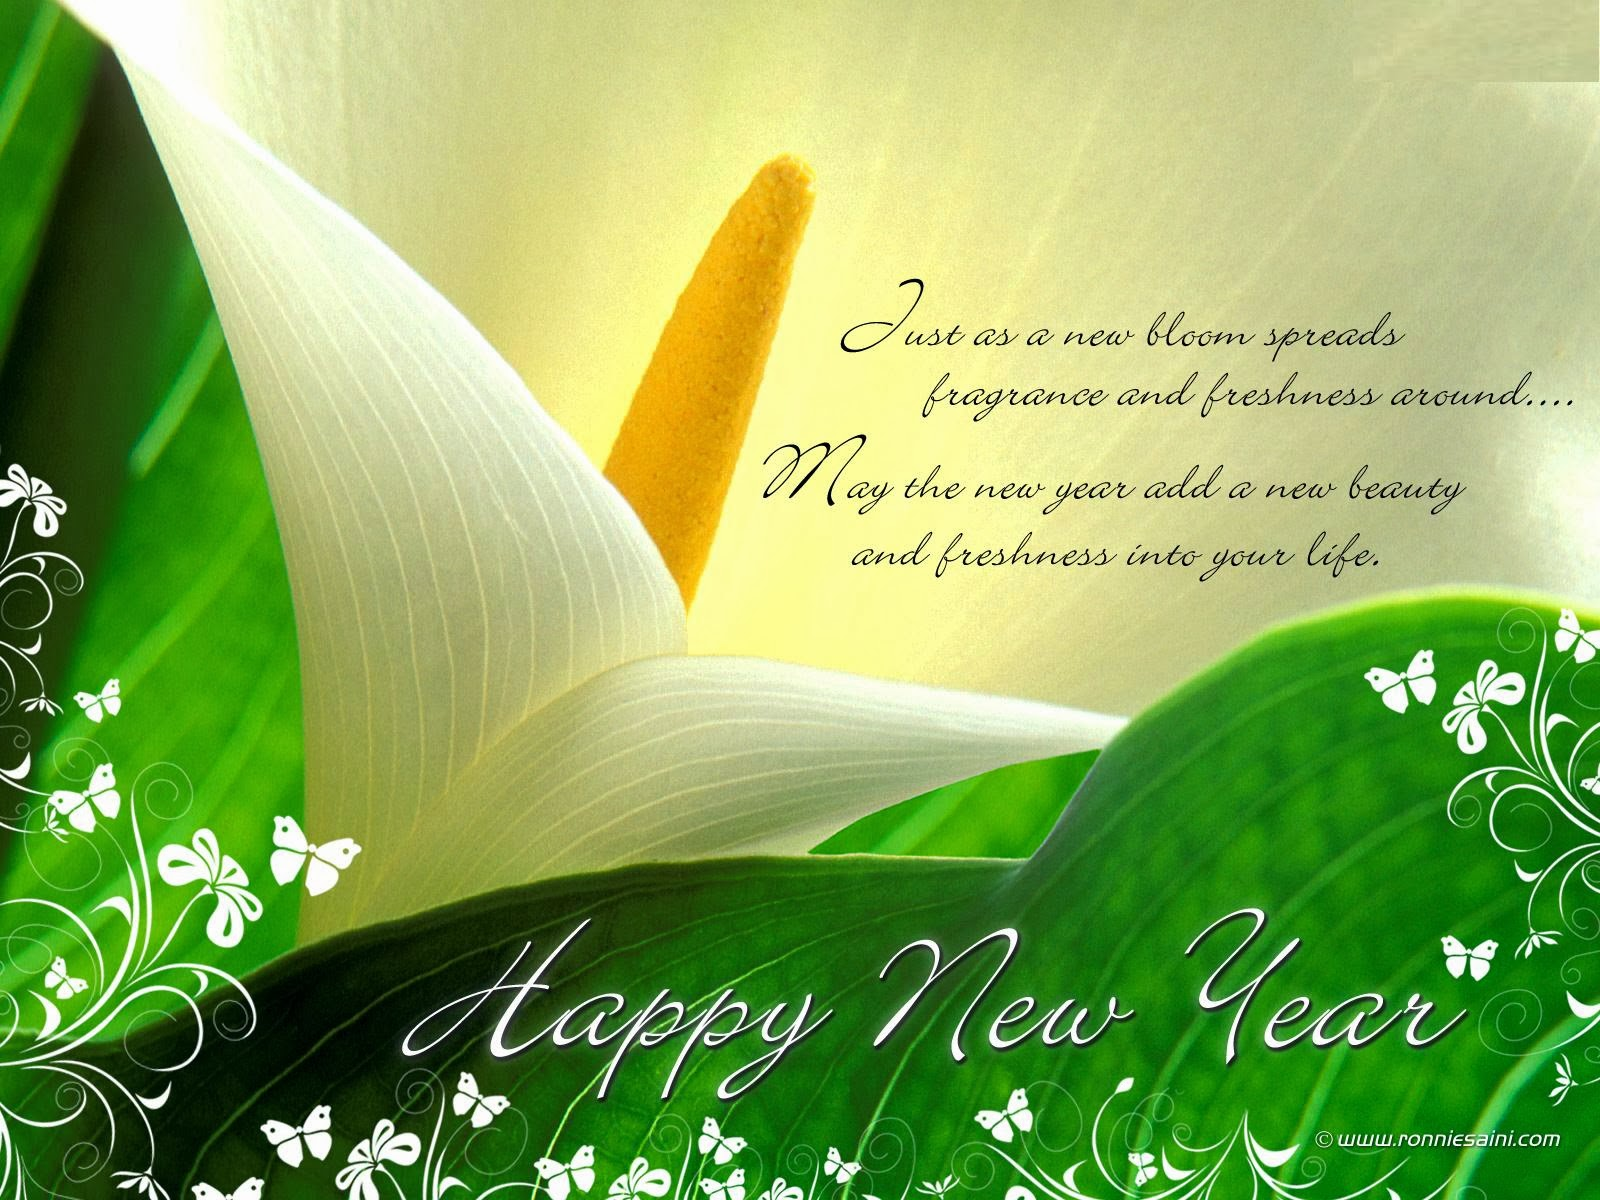 Top 10 Happy New Year 2014 Greeting Cards With Wishes ...